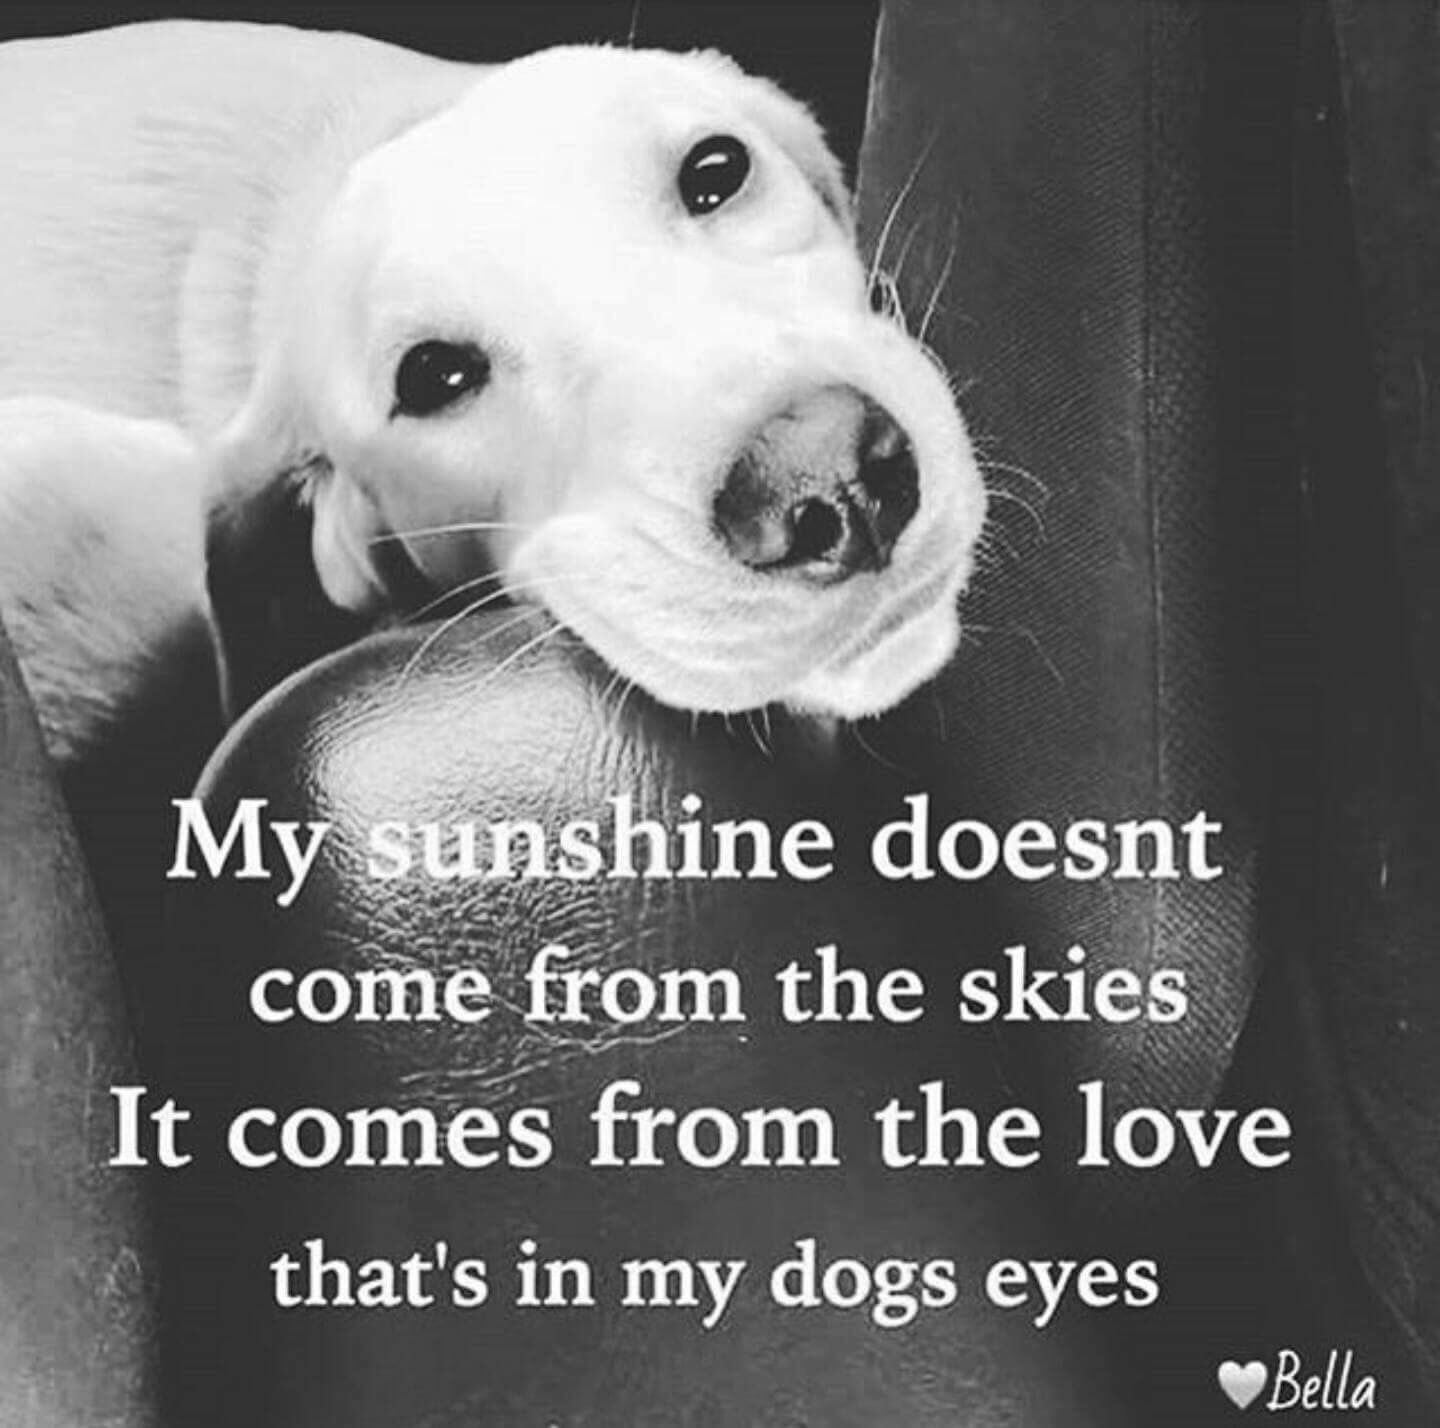 I Love My Dog Quotes This is so cute and heart warming if your a dog lover save this! I  I Love My Dog Quotes